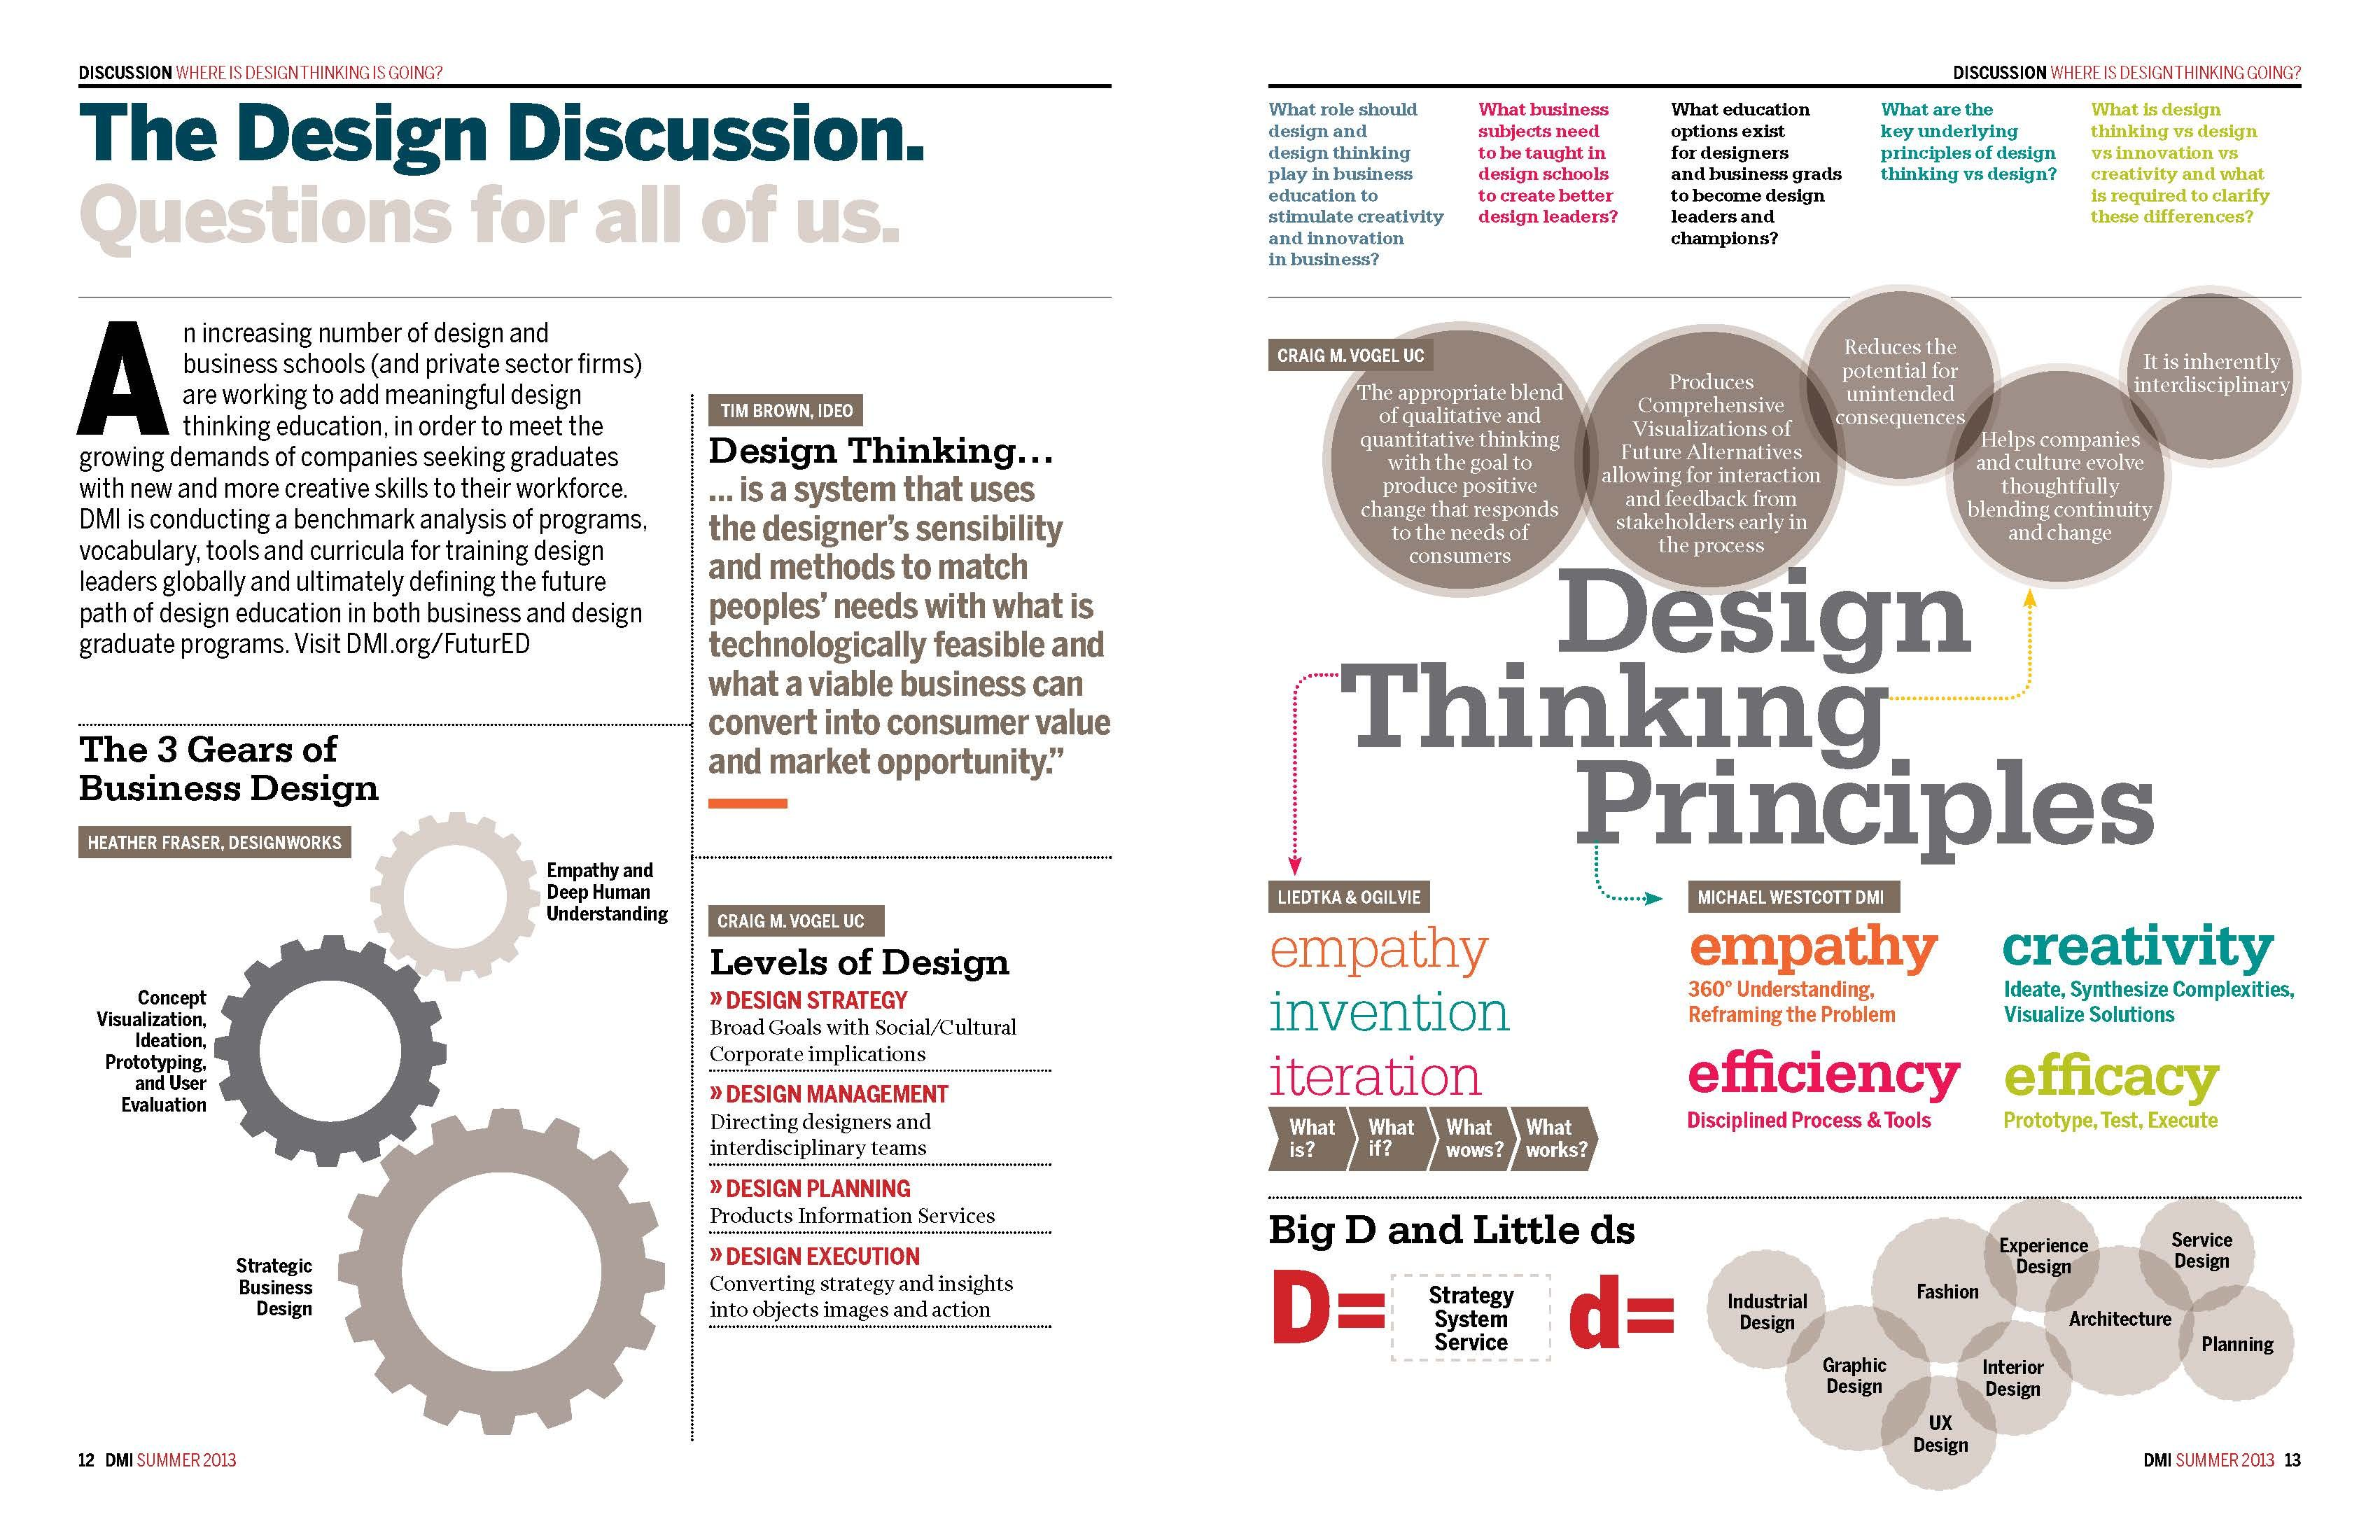 The Design Discussion Questions For All Of Us By Tim Brown Craig